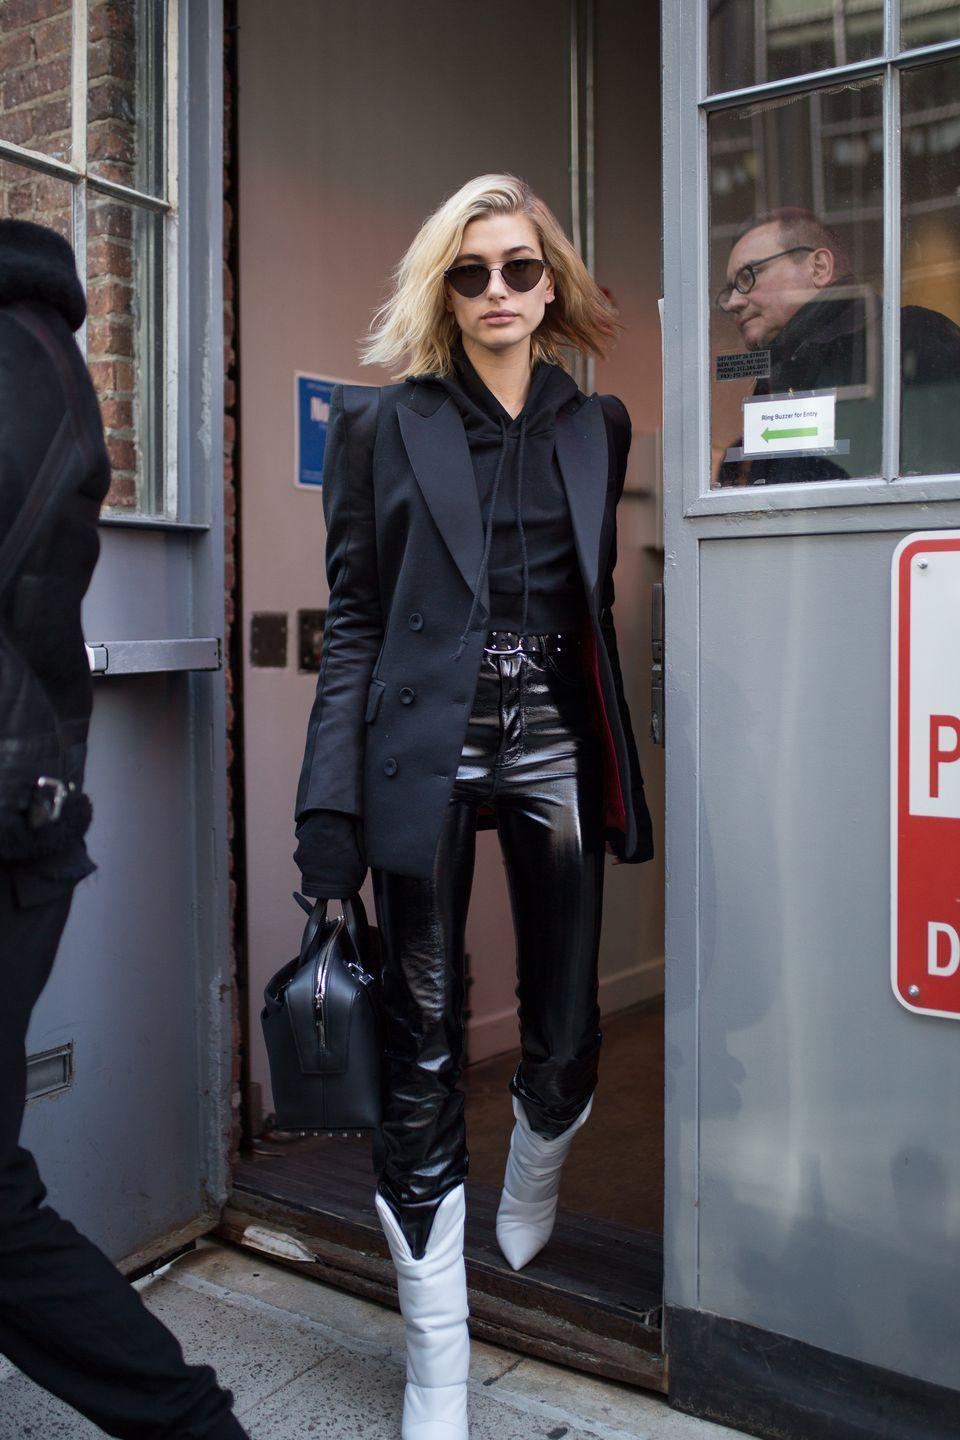 <p><em>This </em>is how to wear all black. A structured blazer, slouchy hoodie, and patent leather pants combined offer the perfect mix of texture. The contrast of laid-back and ultra polished gives this look such a fashion feel.  </p>